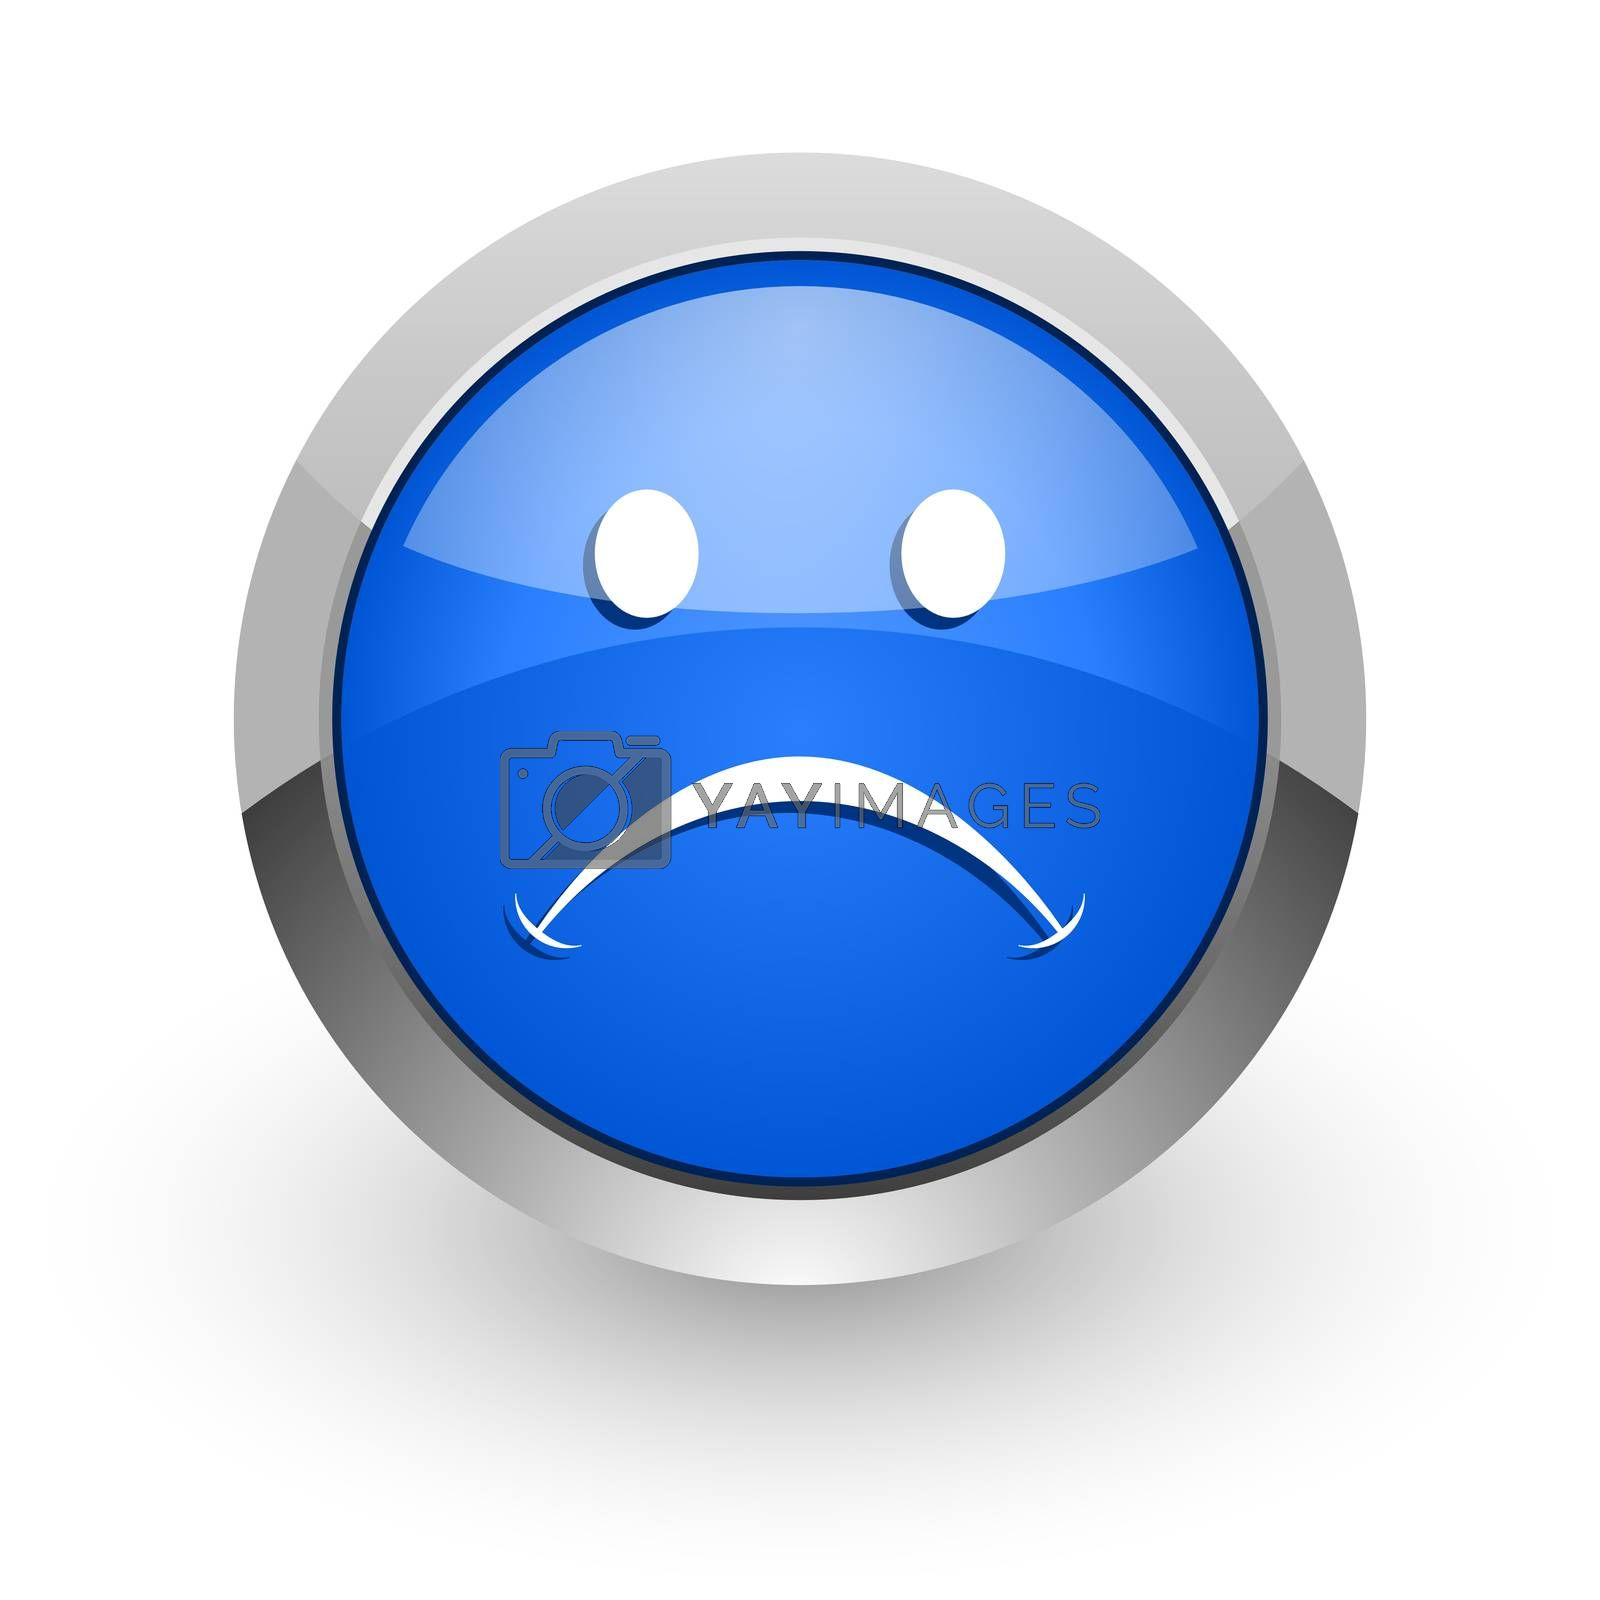 Royalty free image of cry blue glossy web icon by alexwhite